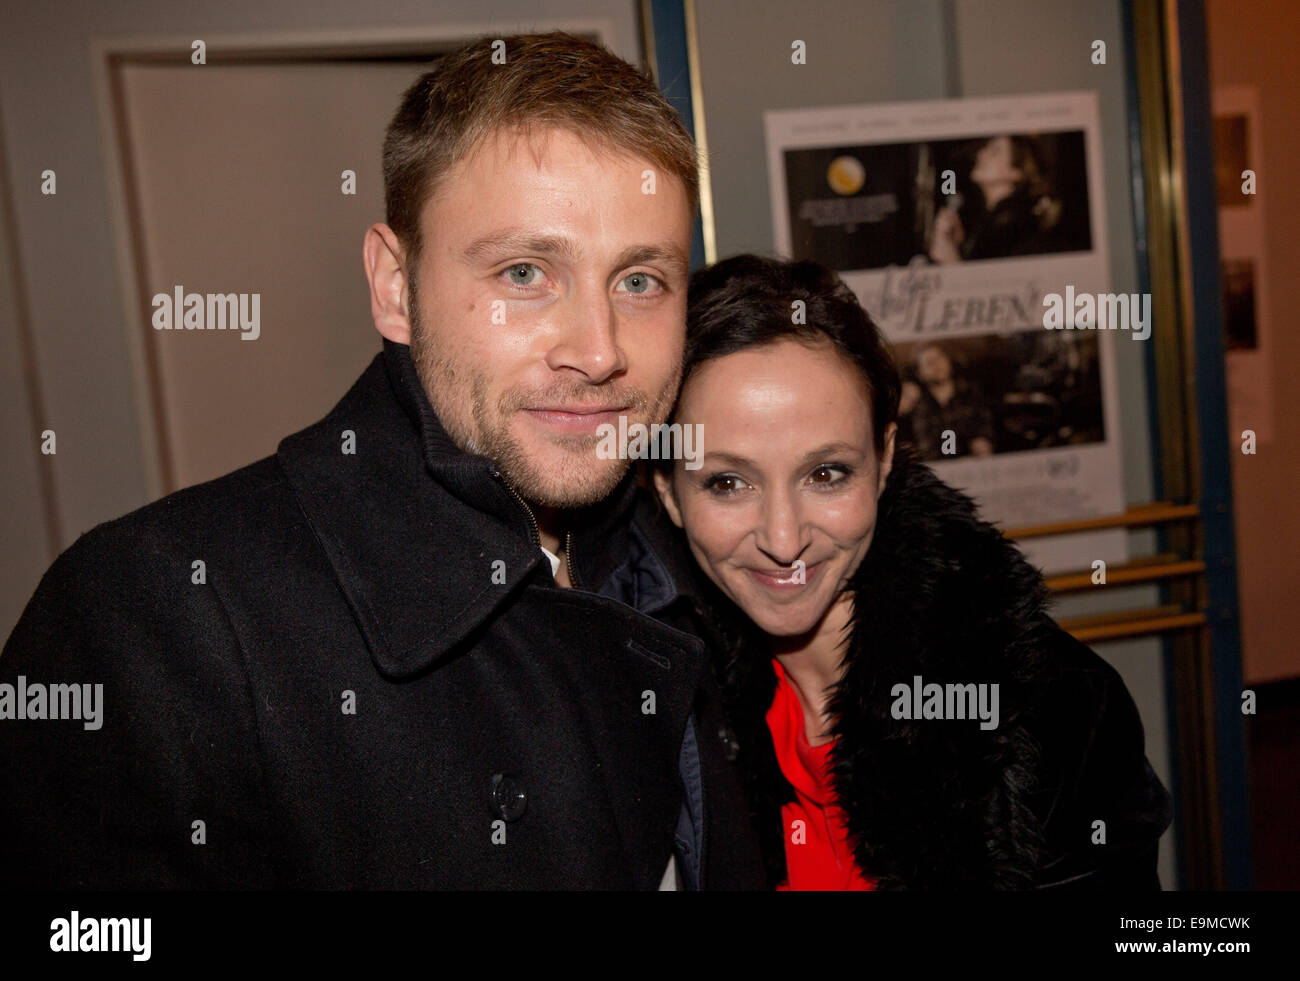 Picture of max riemelt - Actress Sharon Brauner R And Actor Max Riemelt Arrive For The Premiere Of The Film Auf Das Leben In Berlin 29 October 2014